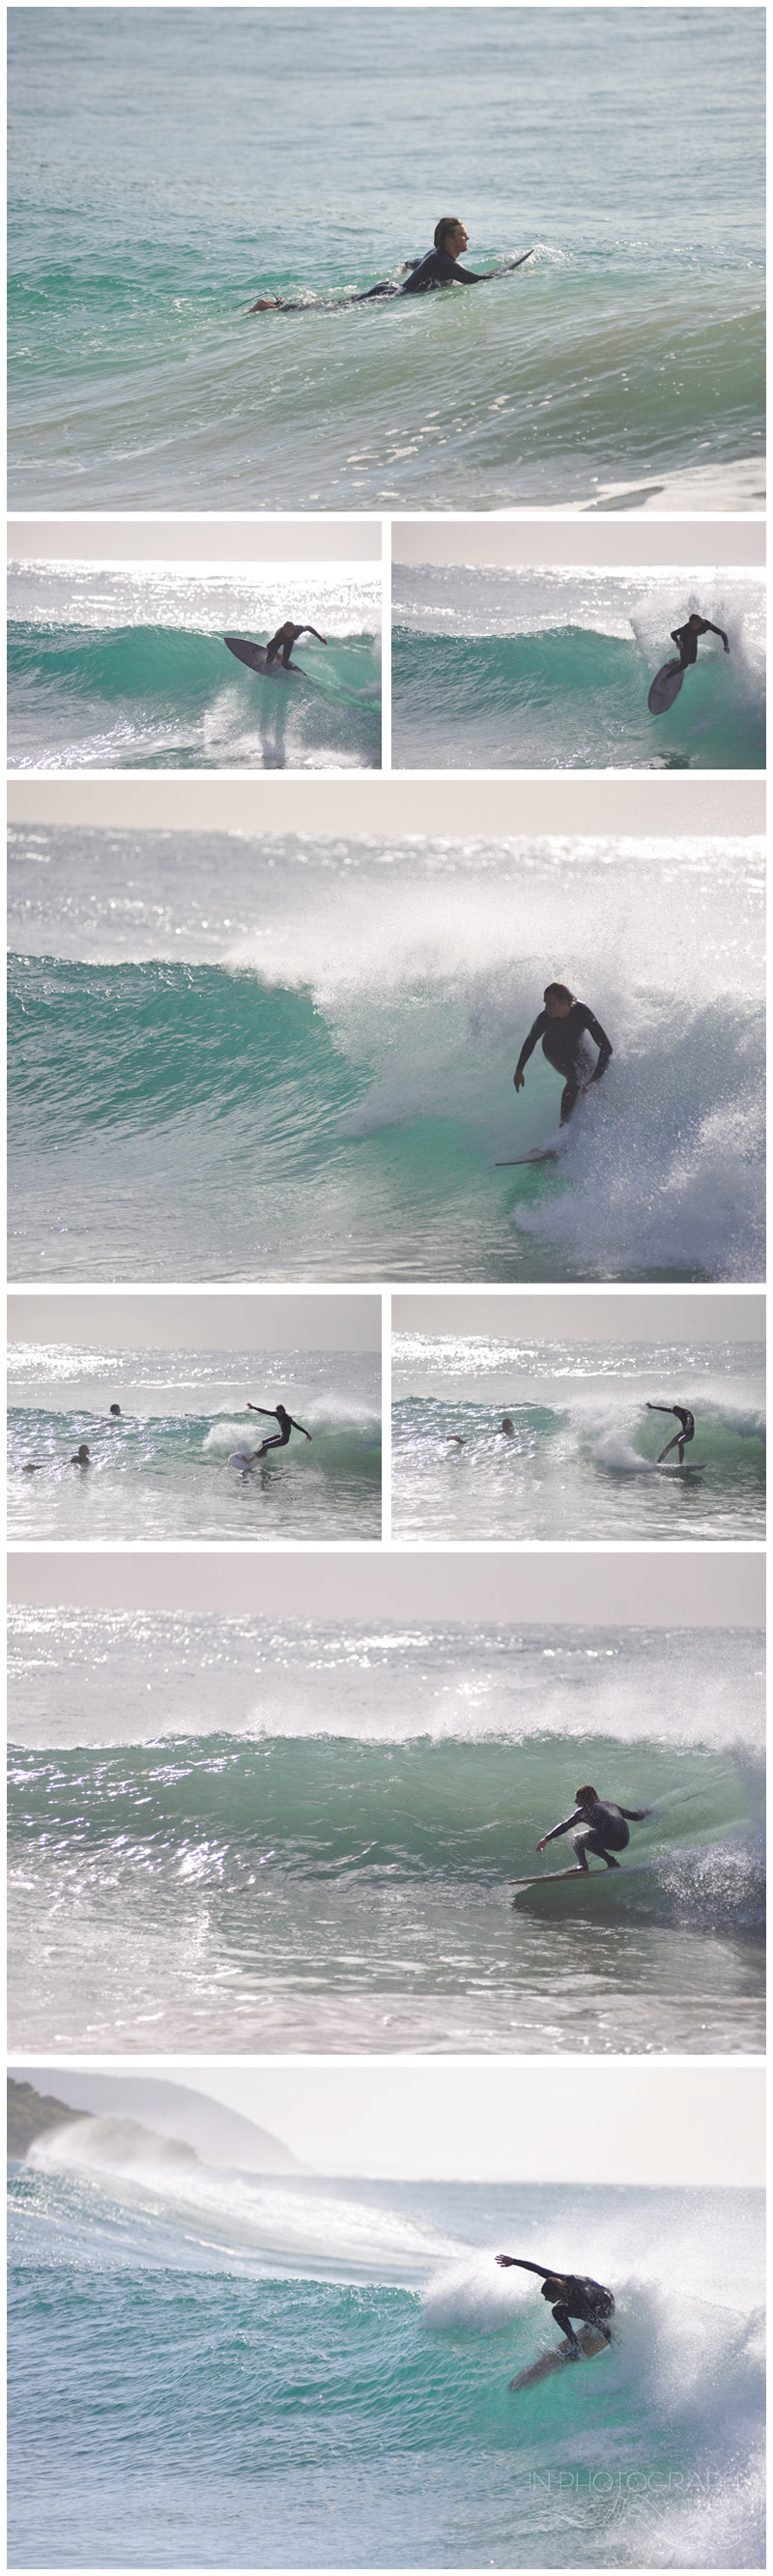 Wye River surf